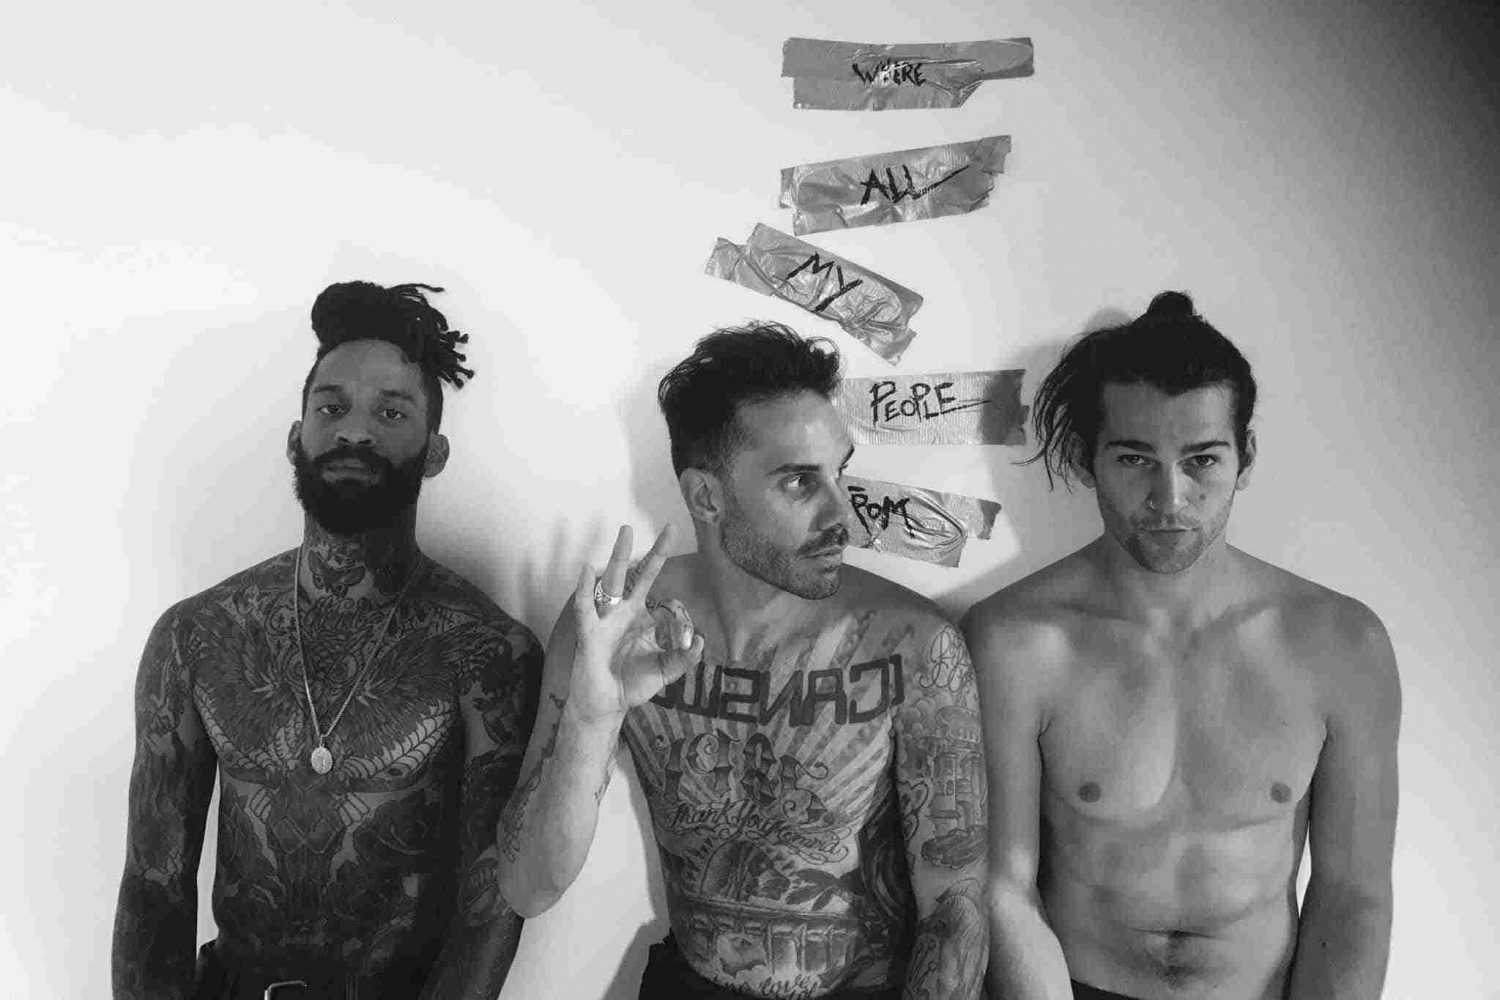 Jason Aalon Butler's new band The Fever have dropped their debut single 'We're Coming In'